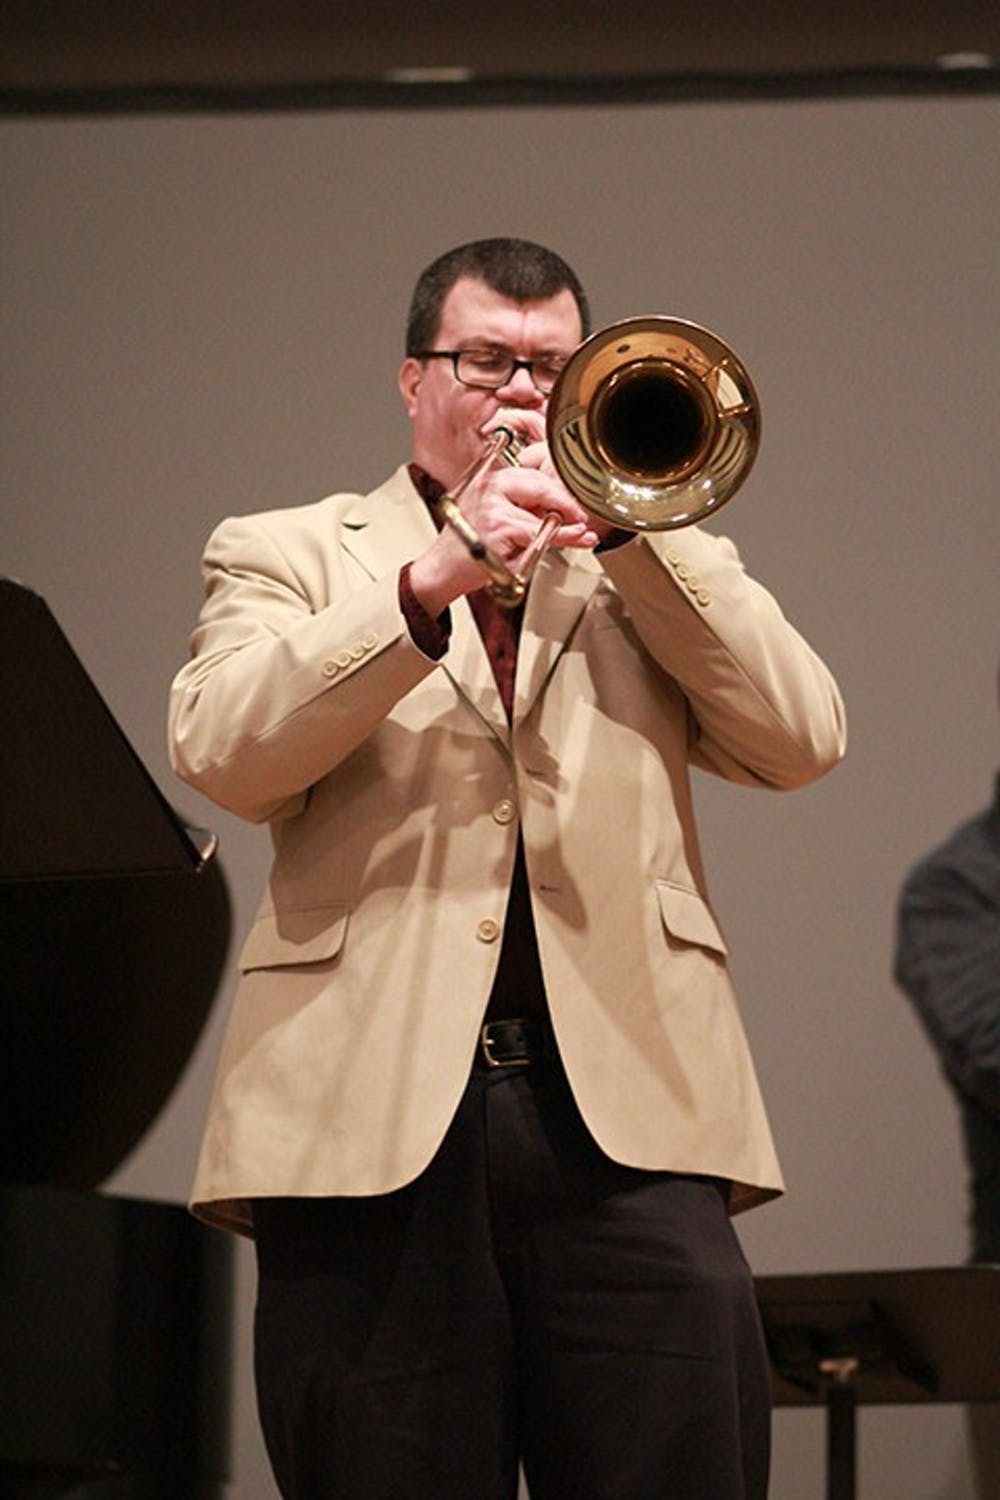 Jay Vonada quartet brings jazz performance to Old Main Chapel